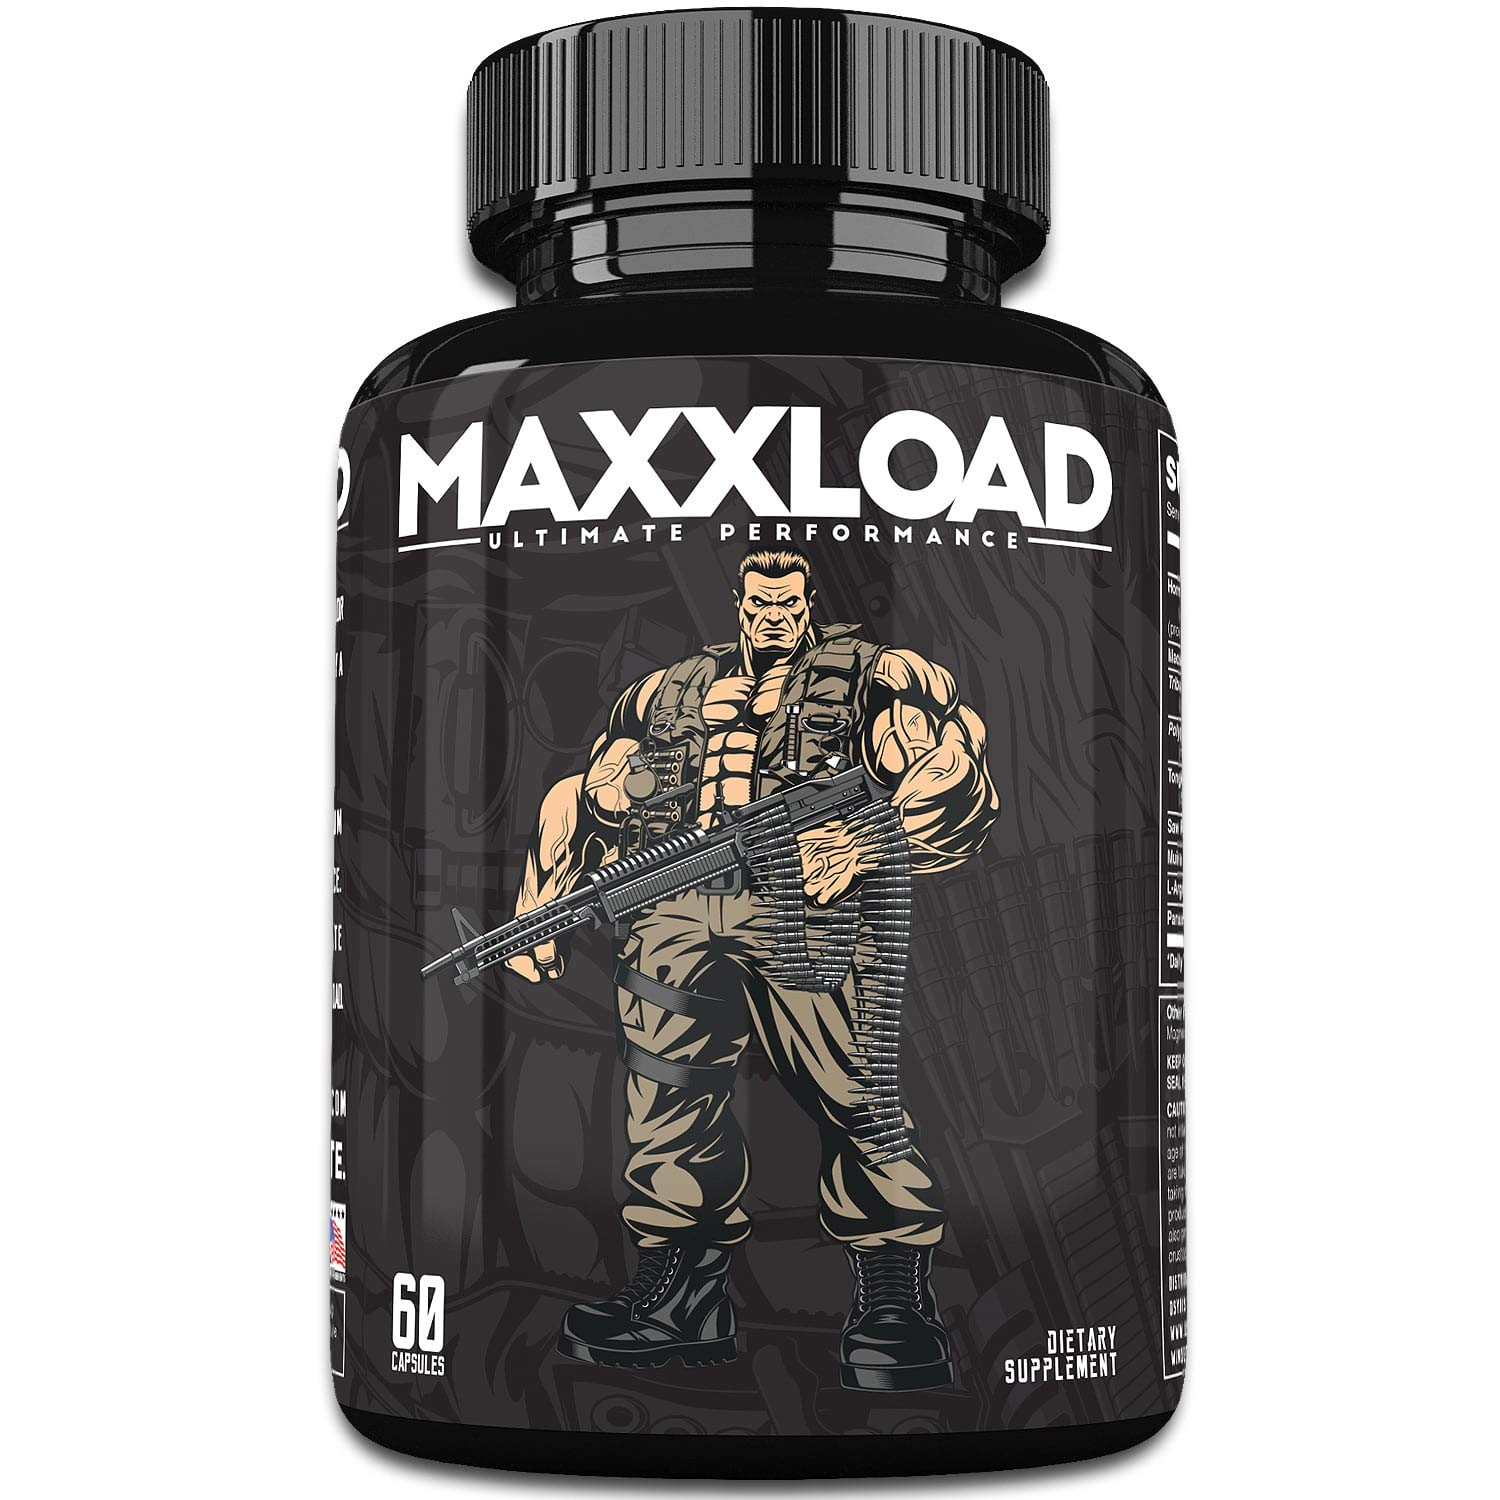 MAXXLOAD Ultimate Male Pills (60 Capsules) Enlargement Booster for Men - Increase Energy, Mood, Size & Endurance - All Natural Performance Enhancing Supplement - 1 Month Supply by Osyris Nutrition Lab